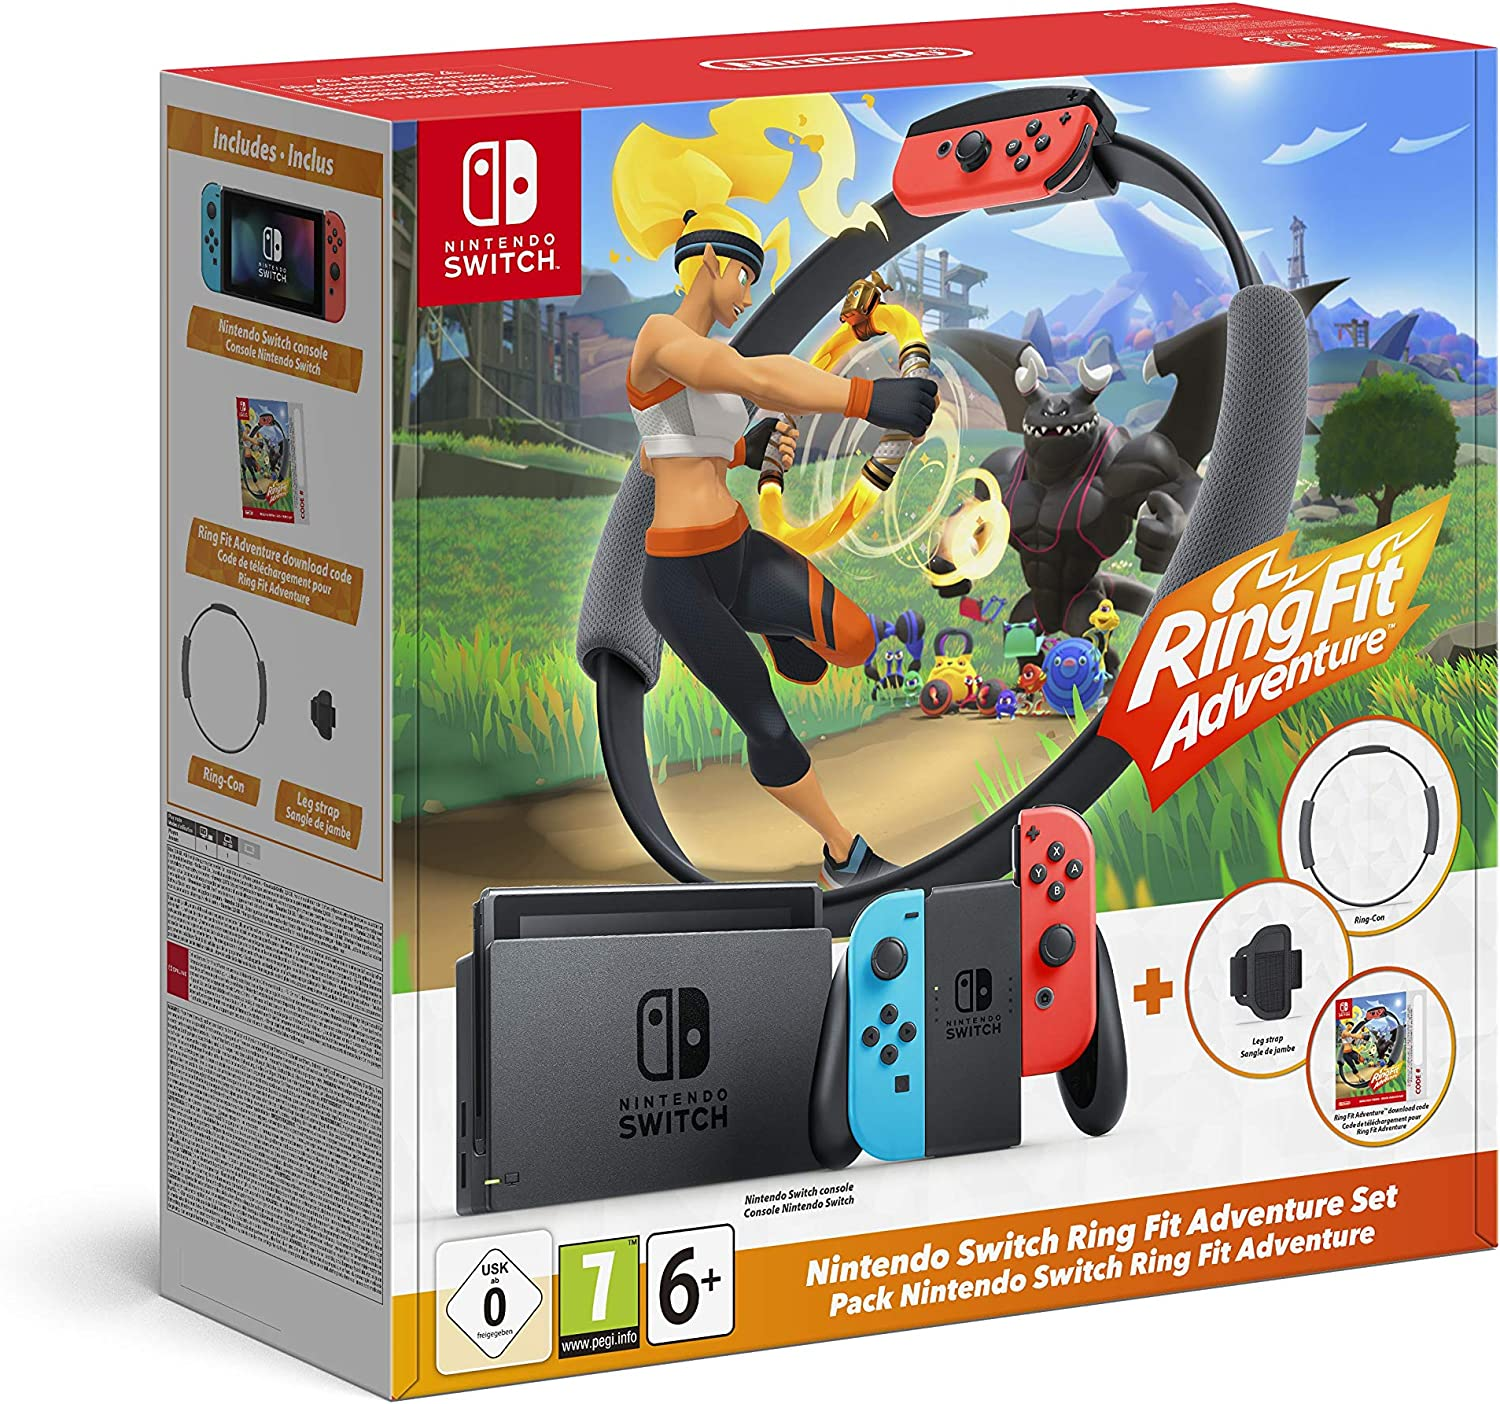 Pack Console Nintendo Switch + Ring Fit Adventure en promotion